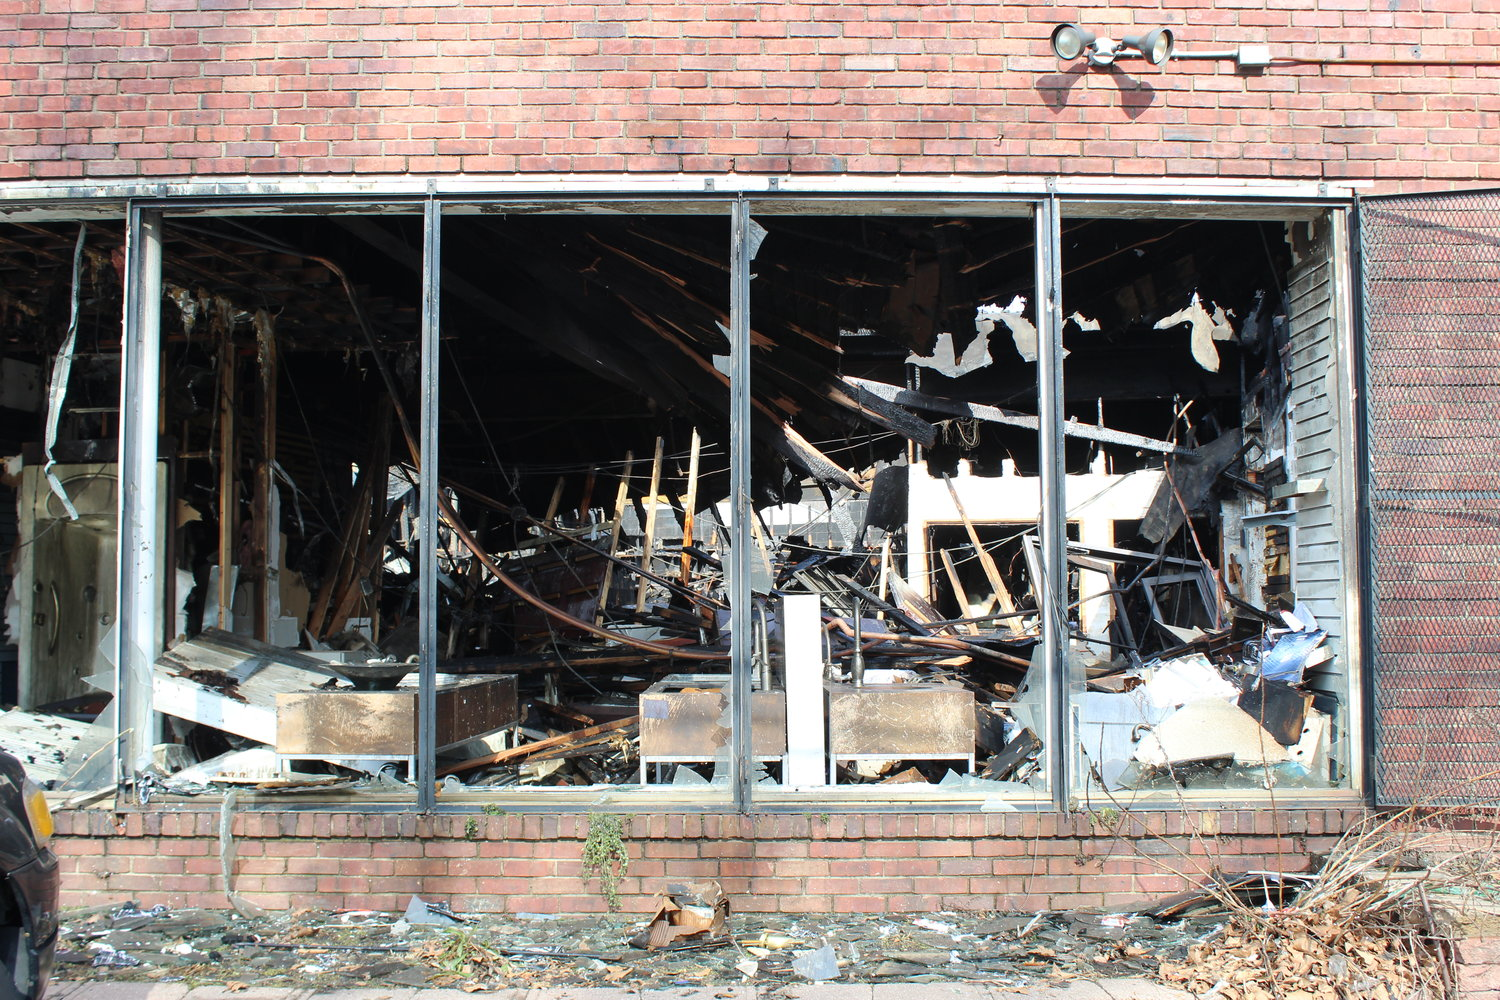 The remains of Cove Plumbing Supply Co.